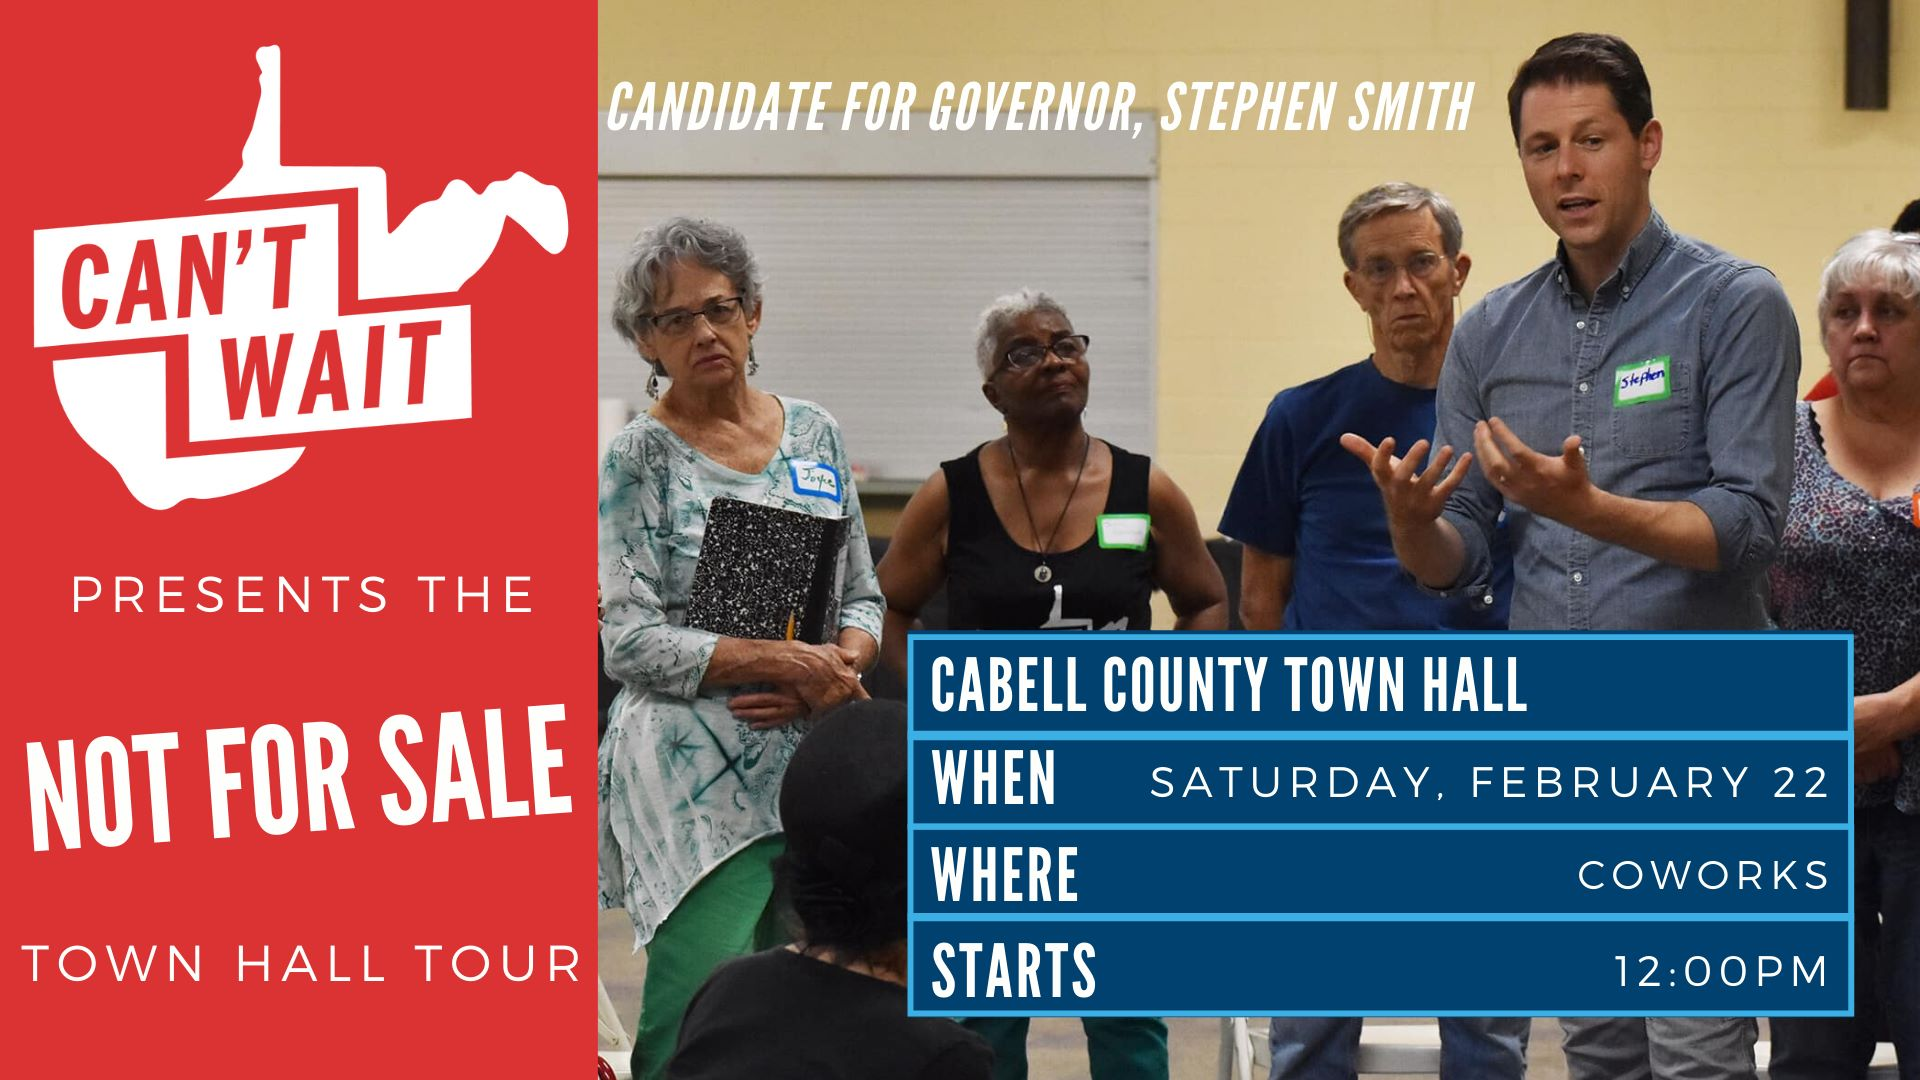 Cabell County Town Hall graphic